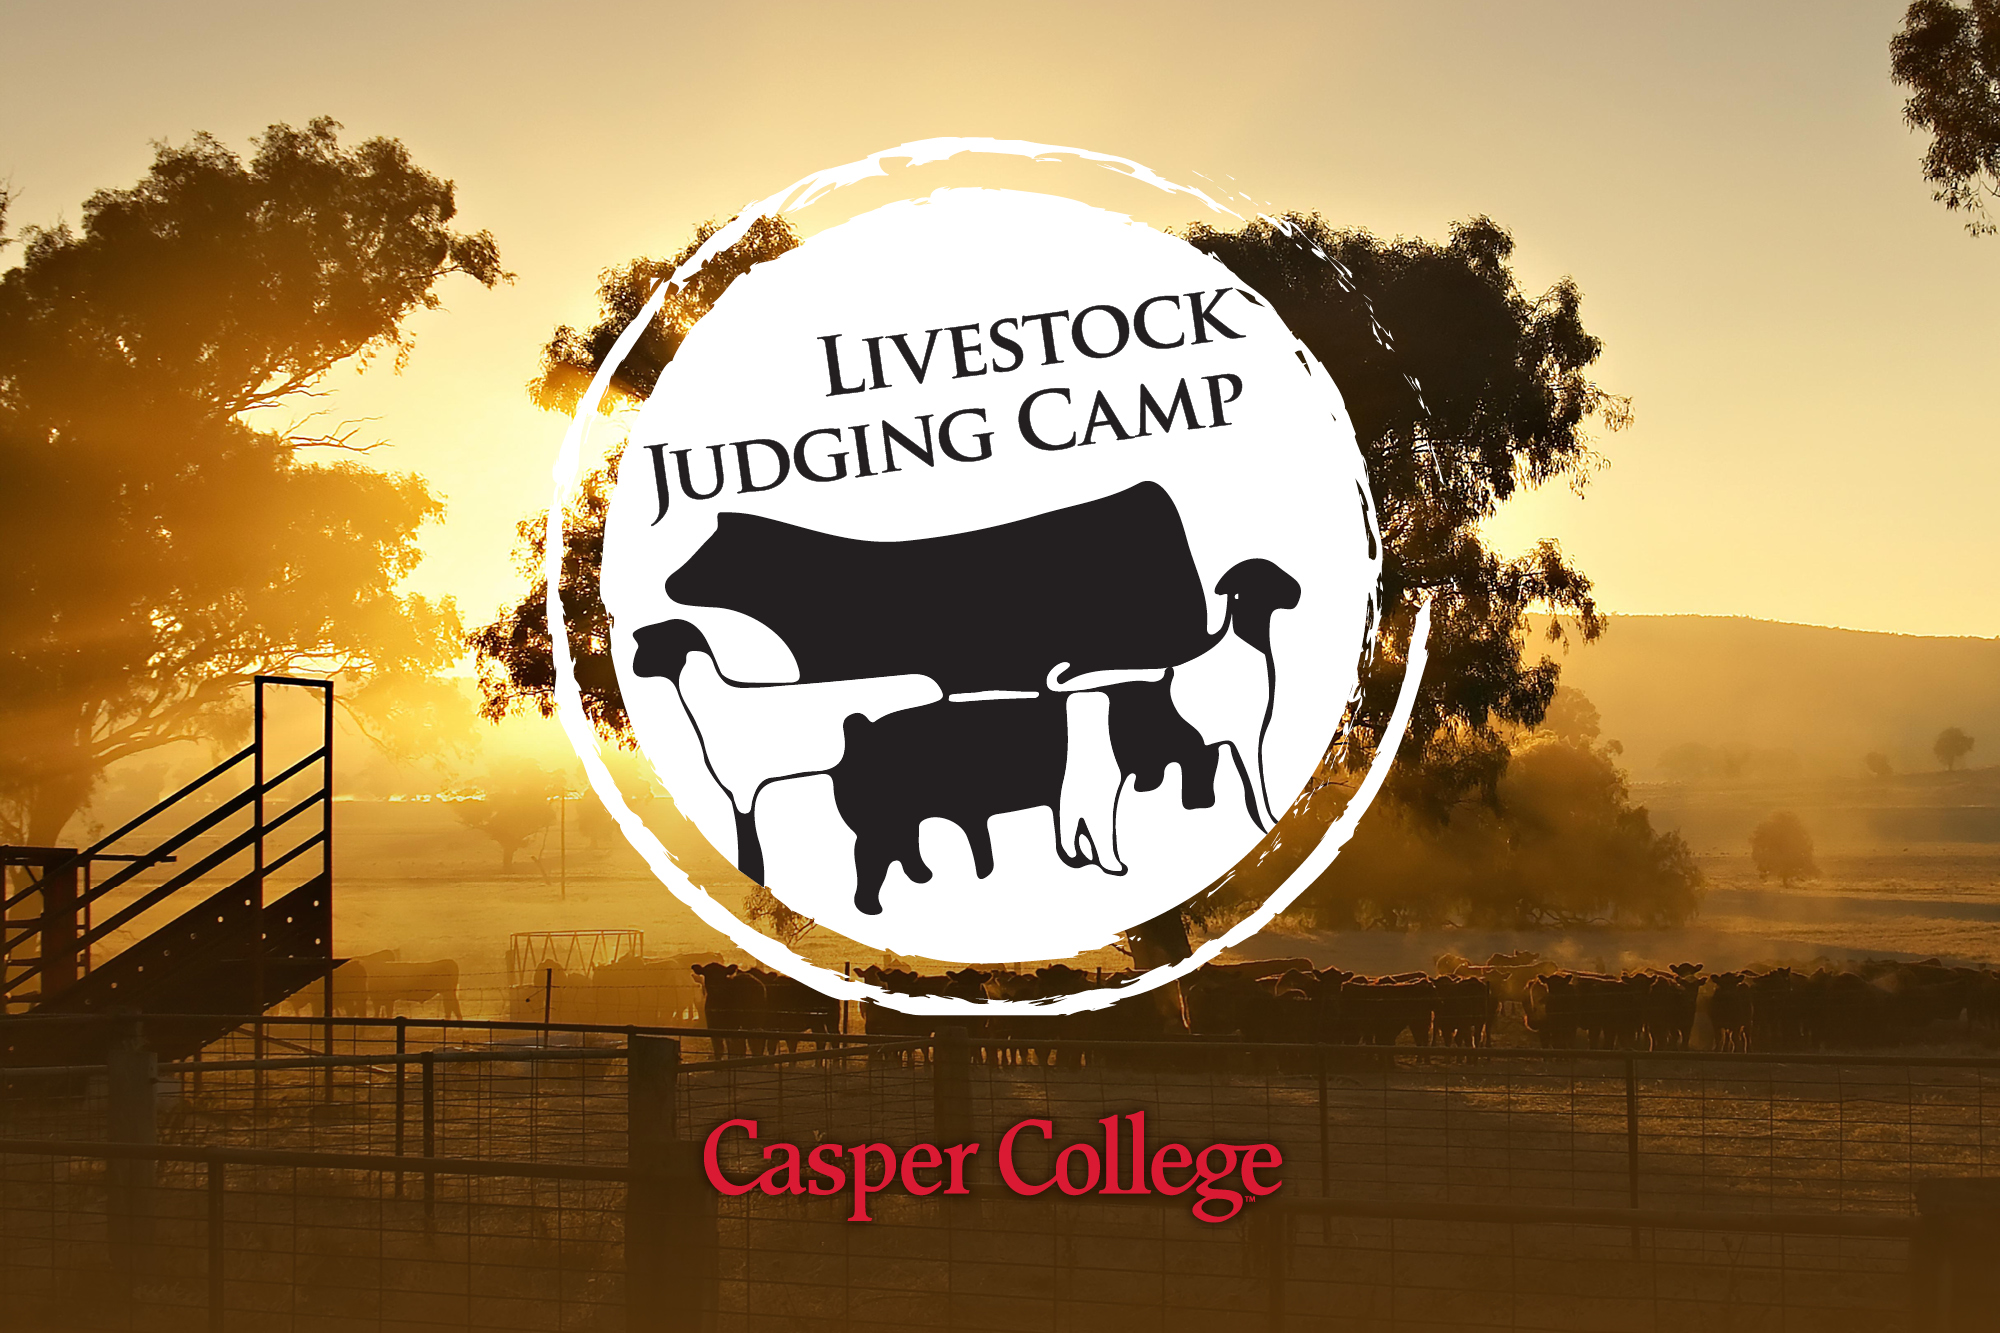 Image of the logo for the Casper College Livestock Judging Camp.